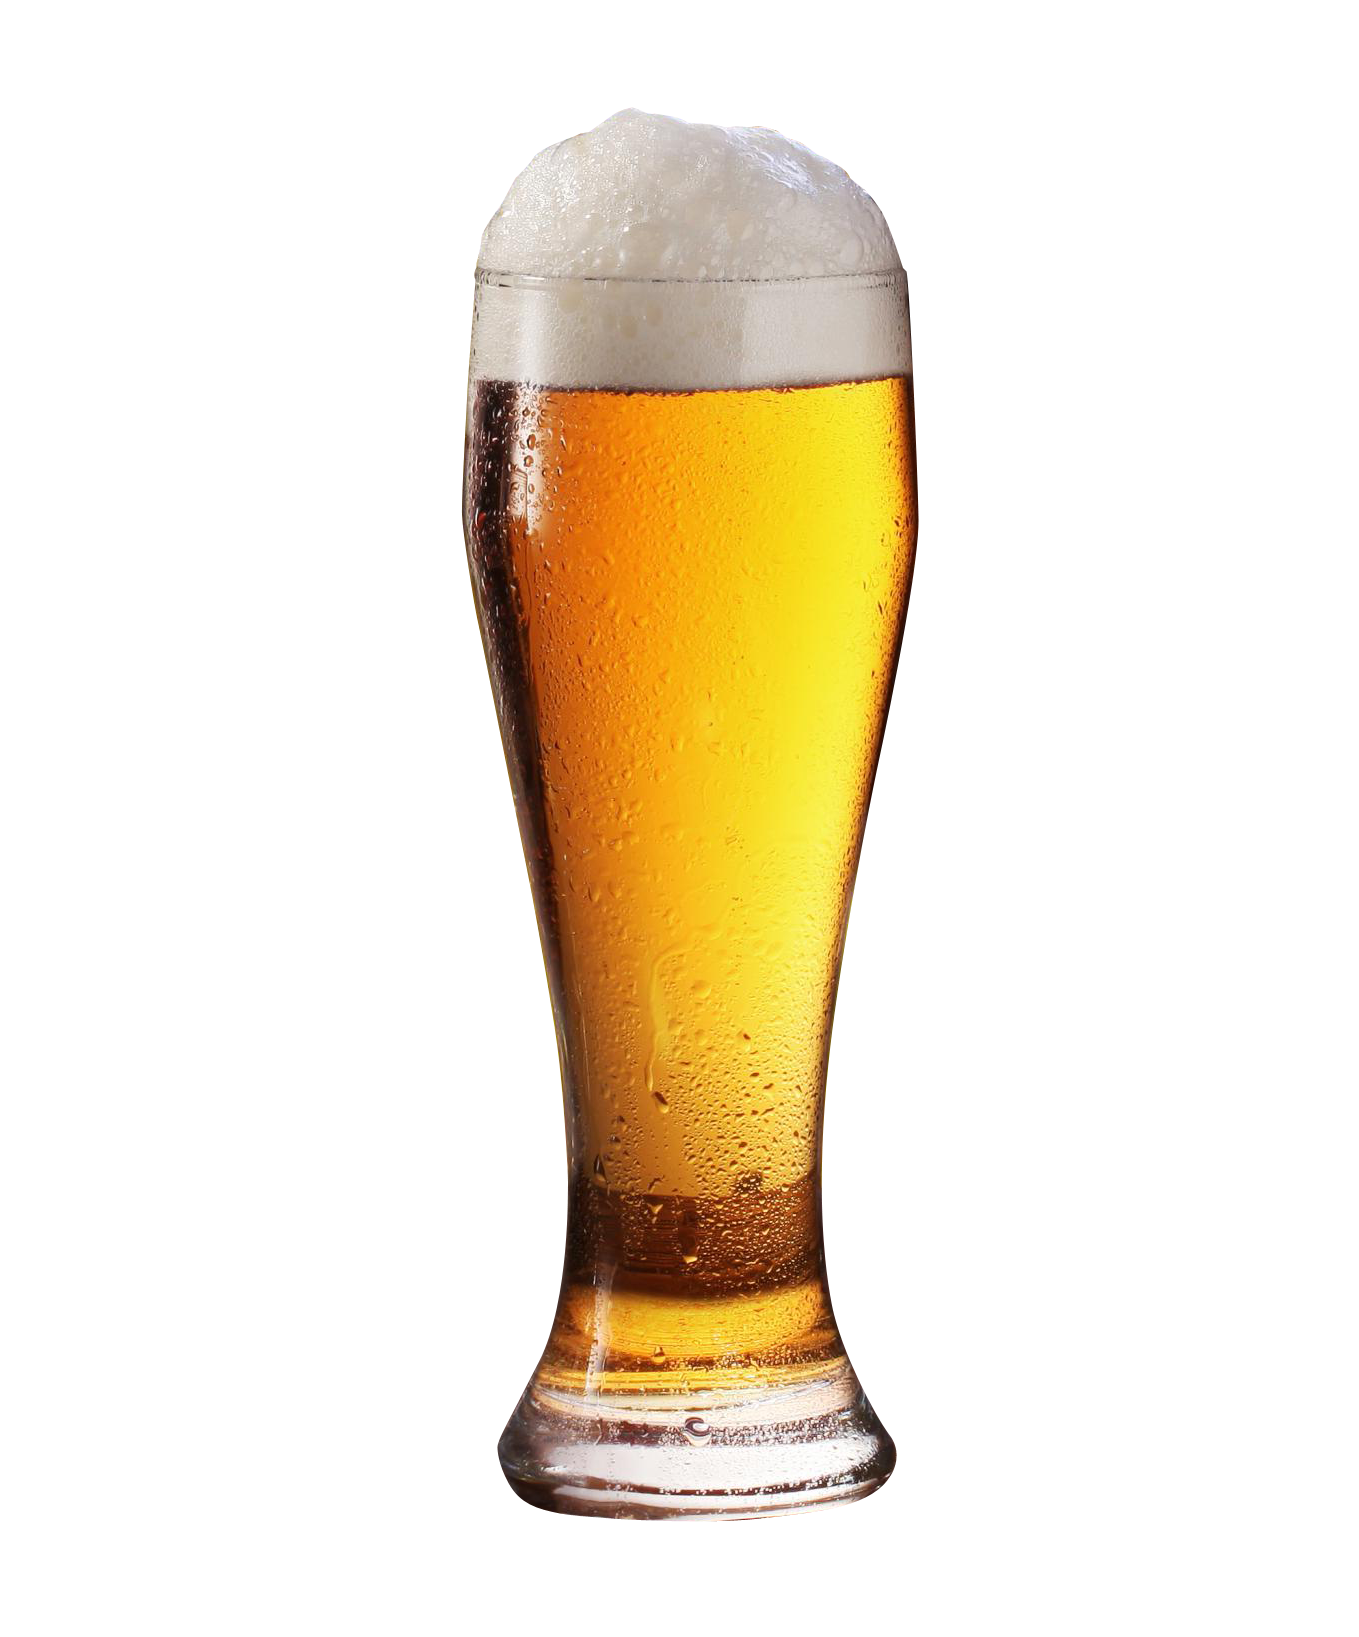 Glass Of Beer Png - Beer Glass PNG Image - PurePNG | Free transparent CC0 PNG Image ...